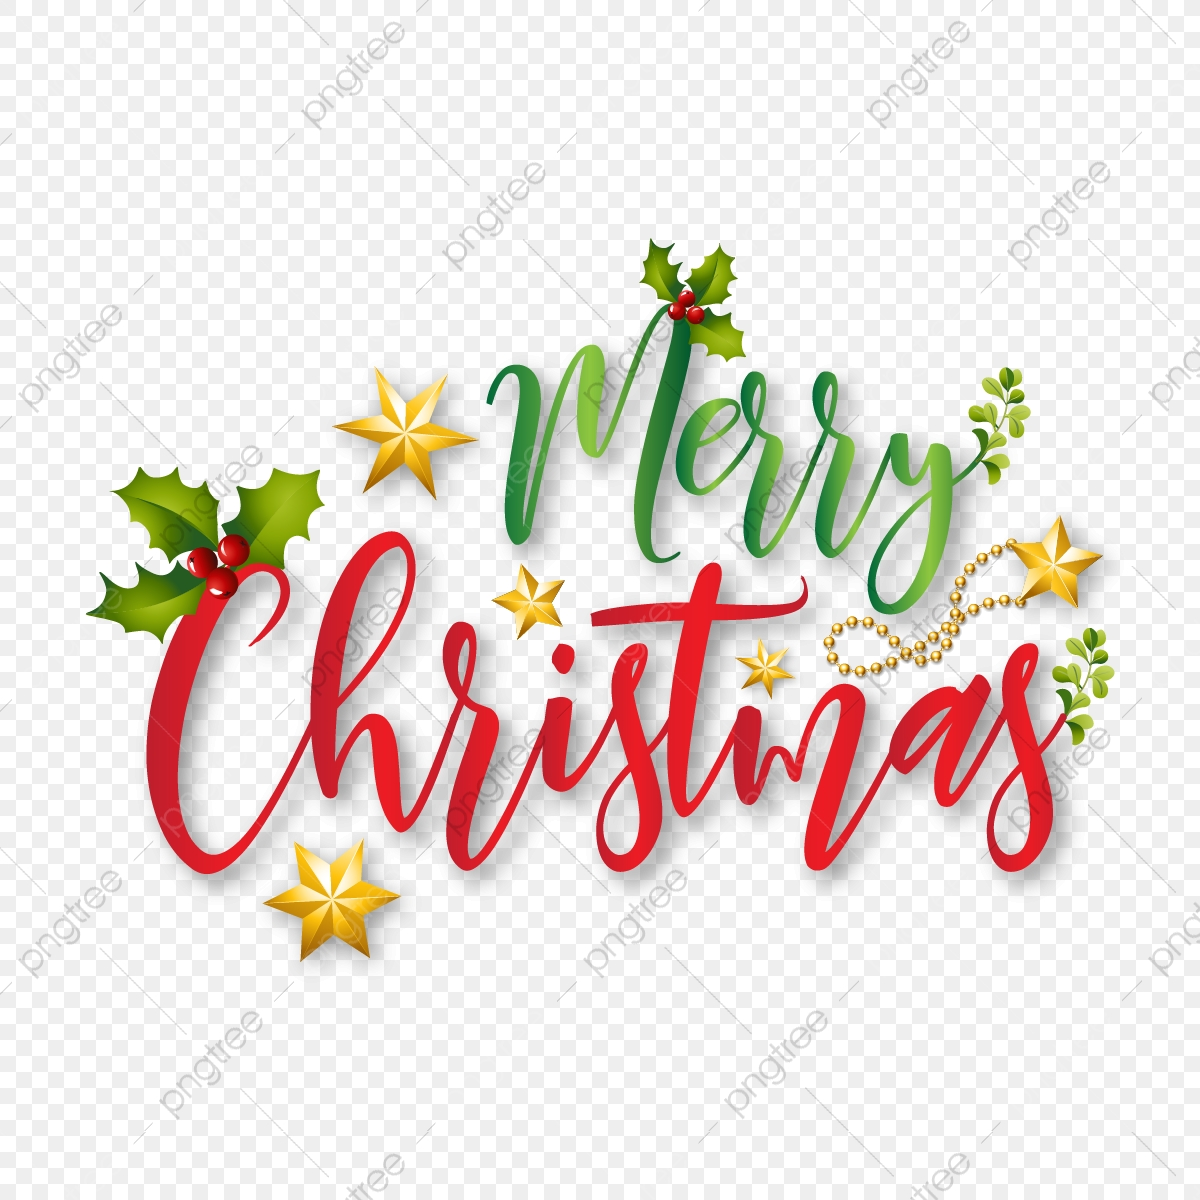 Merry Christmas Typography With Xmas Elements Vector.